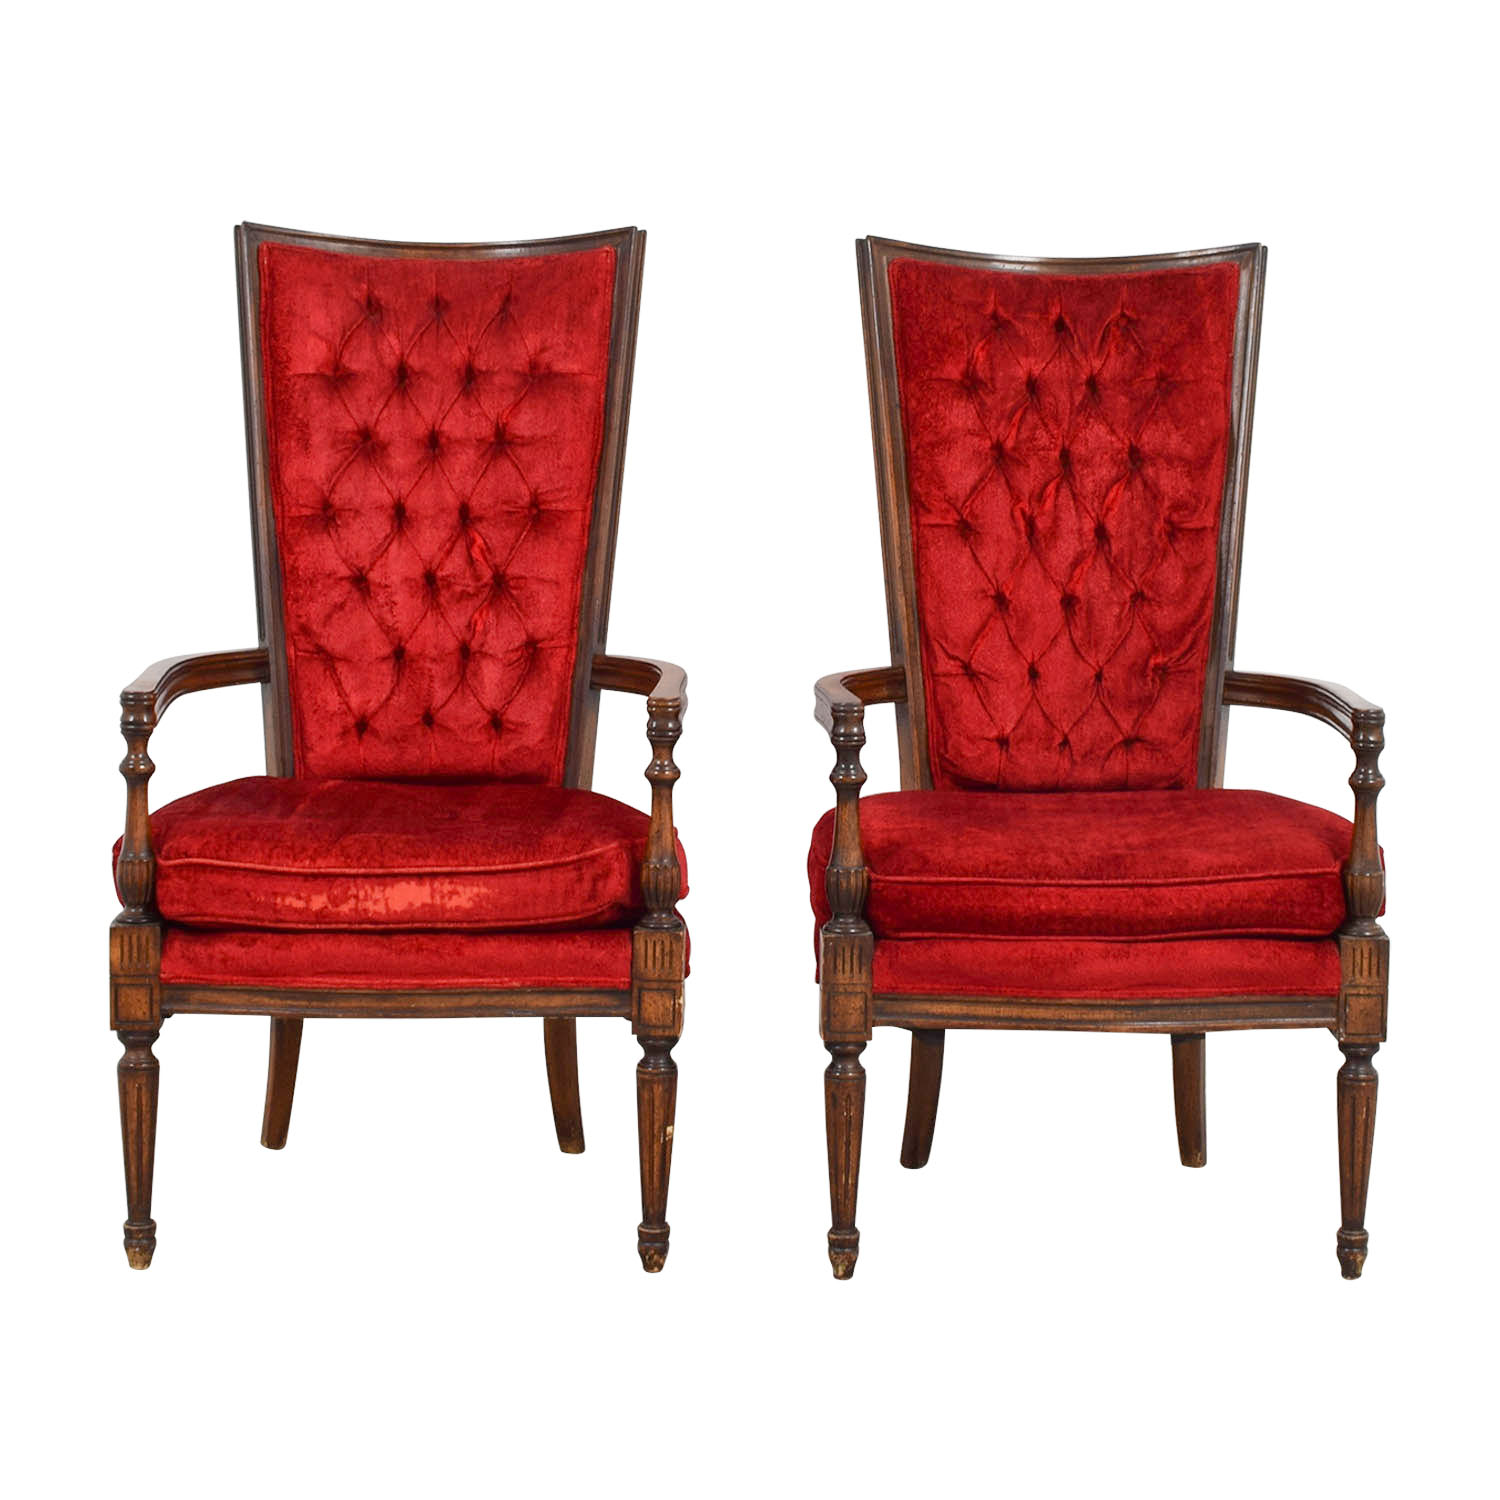 Vintage Accent Chair 79 Off Vintage Red Tufted High Back Accent Chairs Chairs